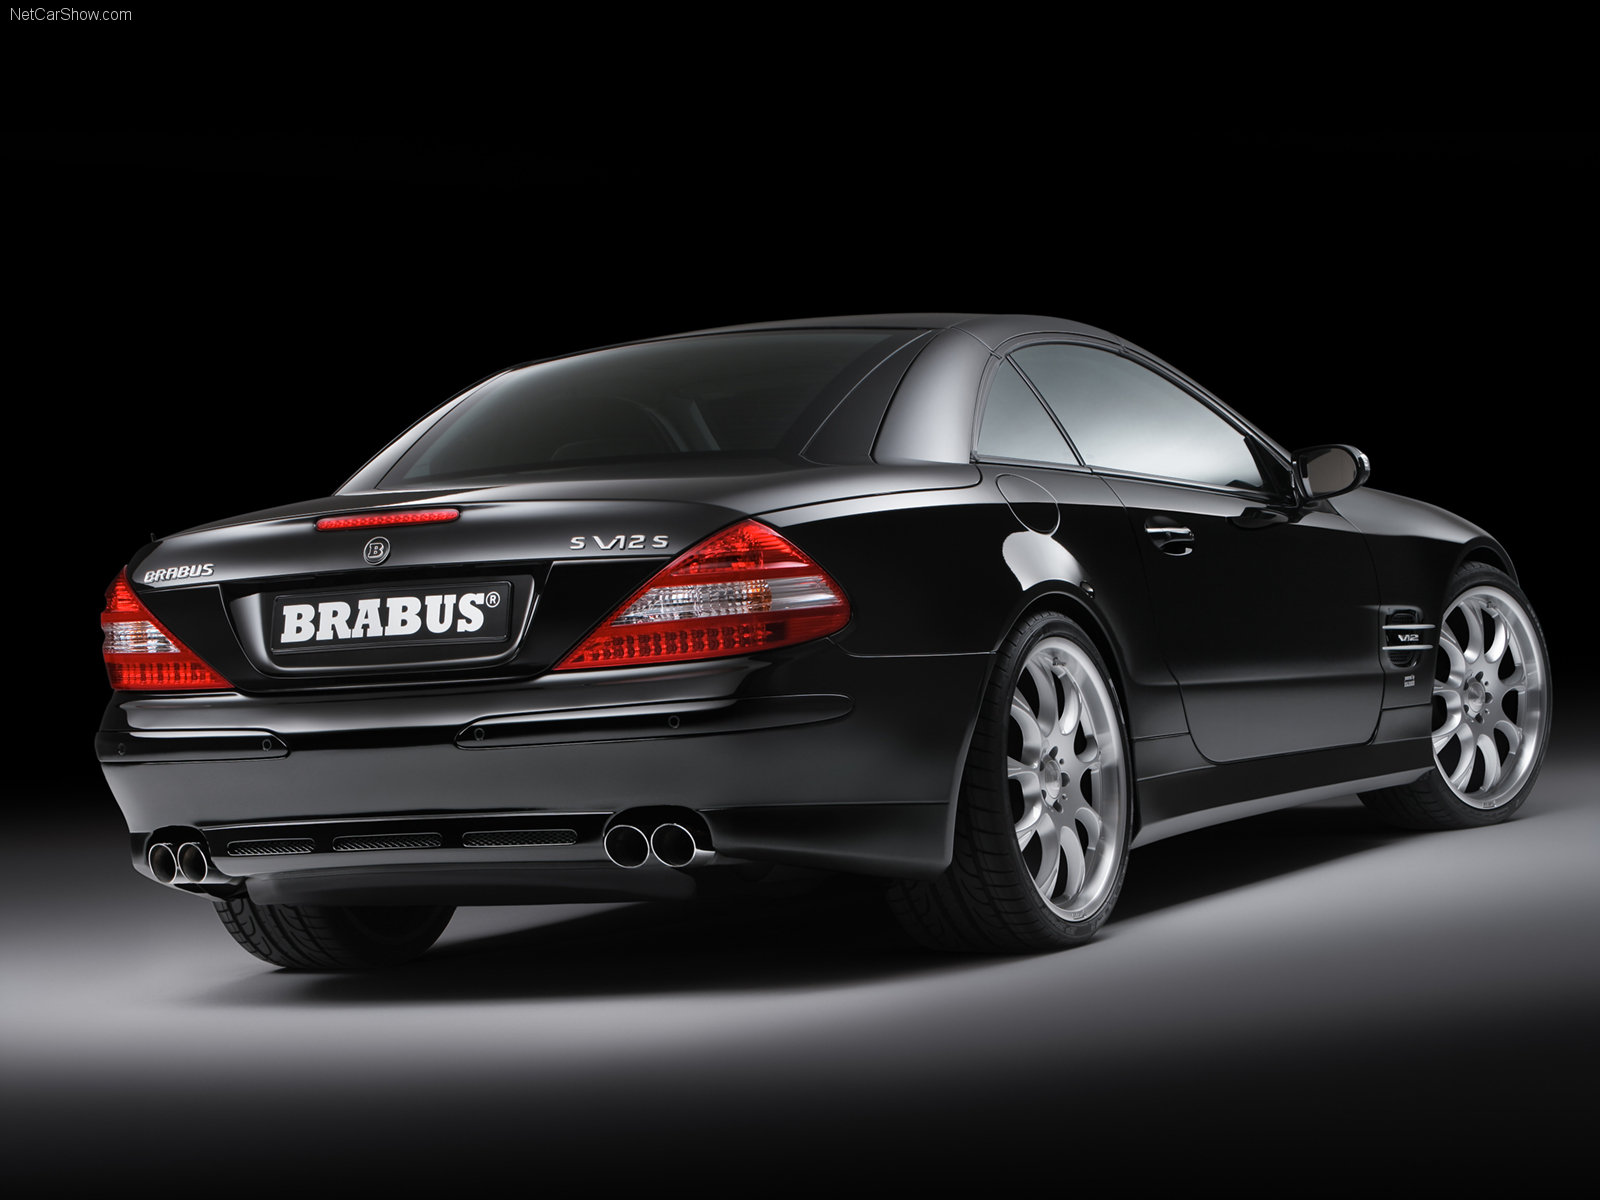 Brabus SV12 S Biturbo Roadster photo 37493